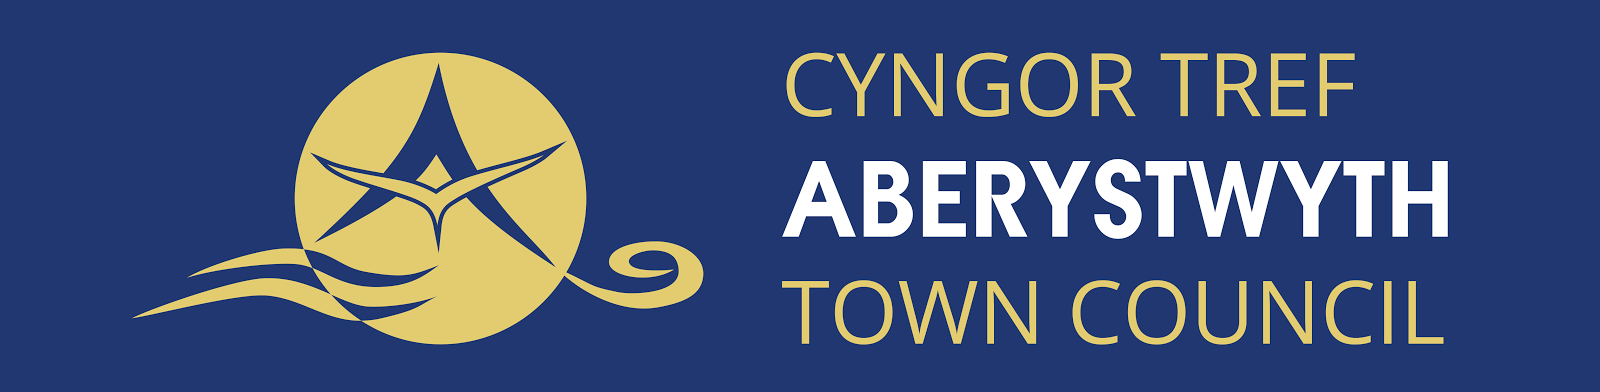 The New Logo for Aberystwyth Town Council